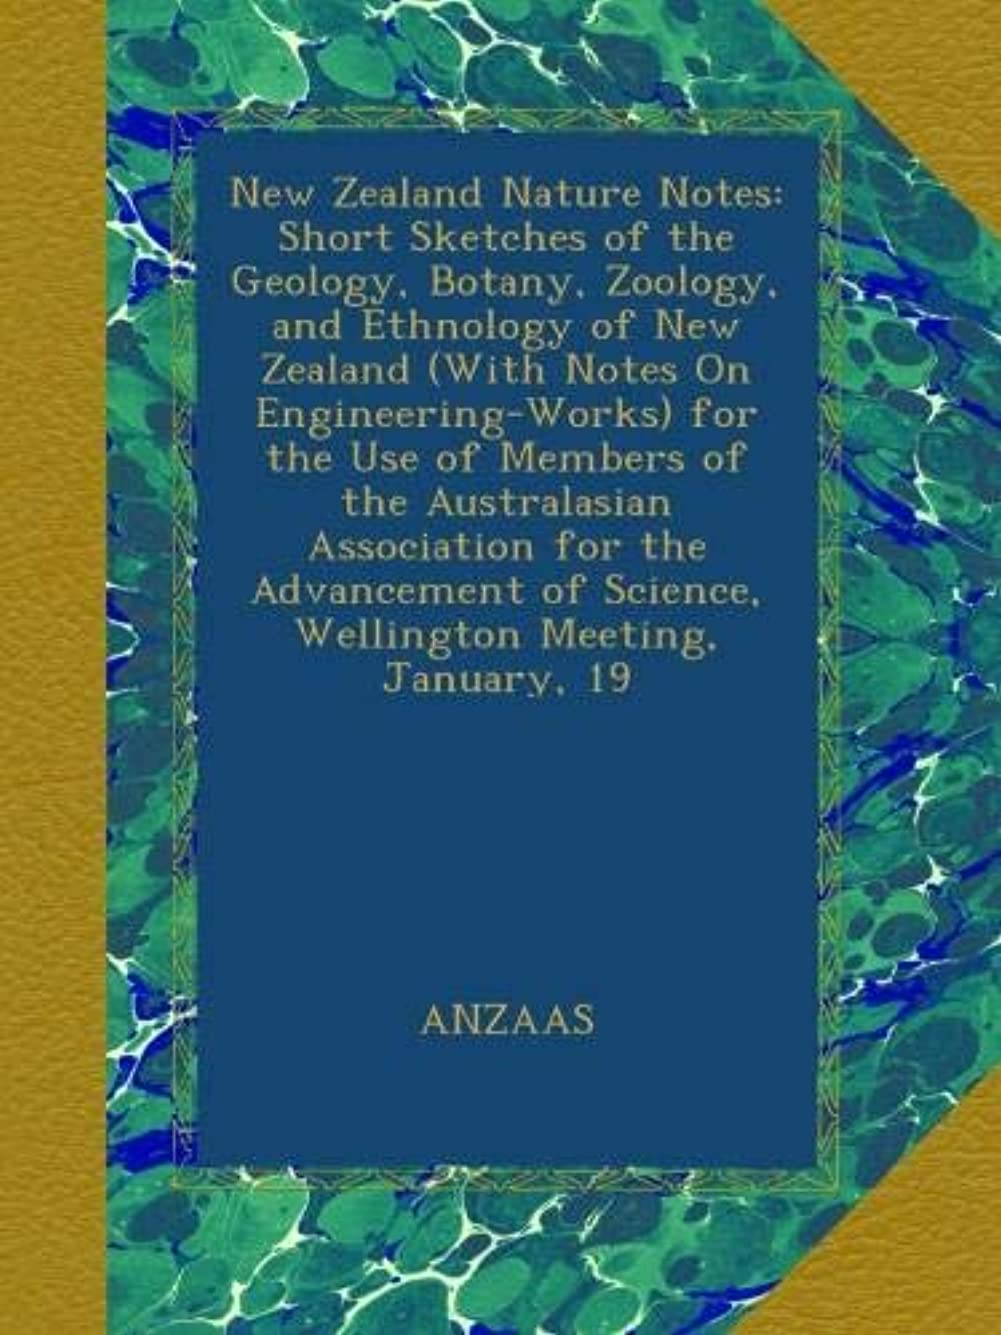 楽しいクレタ活性化New Zealand Nature Notes: Short Sketches of the Geology, Botany, Zoology, and Ethnology of New Zealand (With Notes On Engineering-Works) for the Use of Members of the Australasian Association for the Advancement of Science, Wellington Meeting, January, 19